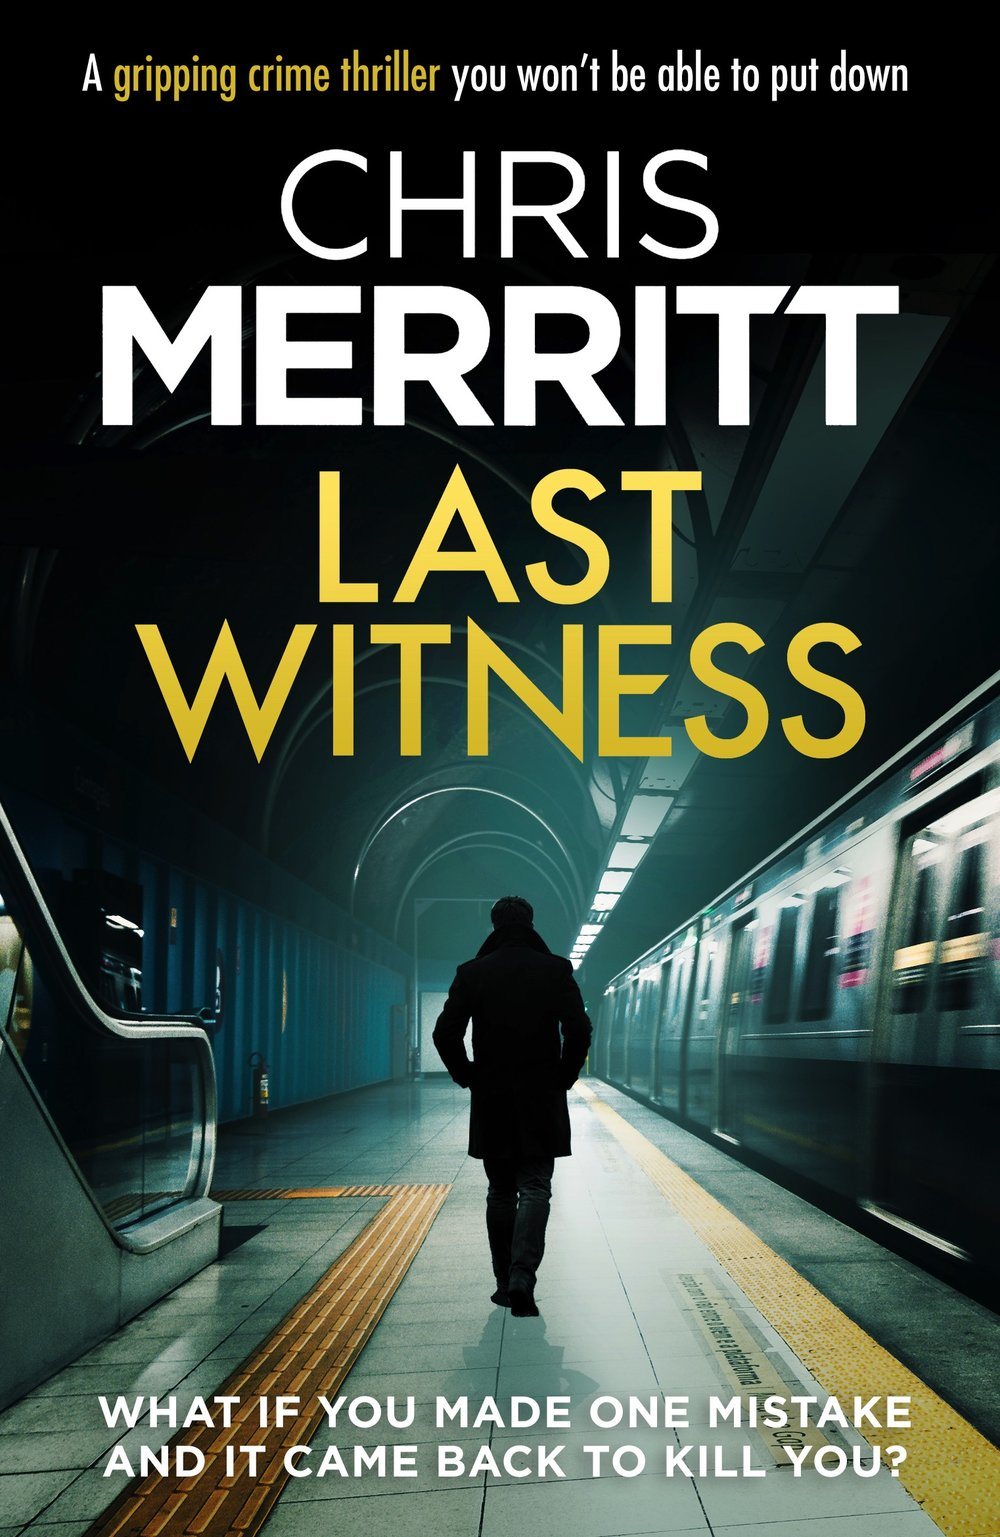 LAST WITNESS - DI Zac Boateng 2: out 24th July 2018What if you made one mistake and it came back to kill you?Detective Zac Boateng's old friend, Troy McEwen, is found dead in his home. The official verdict is suicide. But Boateng believes it was murder. And he thinks he might be next on the killer's list.If Troy didn't take his own life, then who did? As he investigates, Boateng discovers a link to an incident from decades earlier. Mistakes were made that day. Lives were lost and secrets kept. Until now...As more people who were there on that fateful day are found dead, Boateng knows that the killer is closing in on him... Available for pre-order on ebook:mybook.to/LWSocial